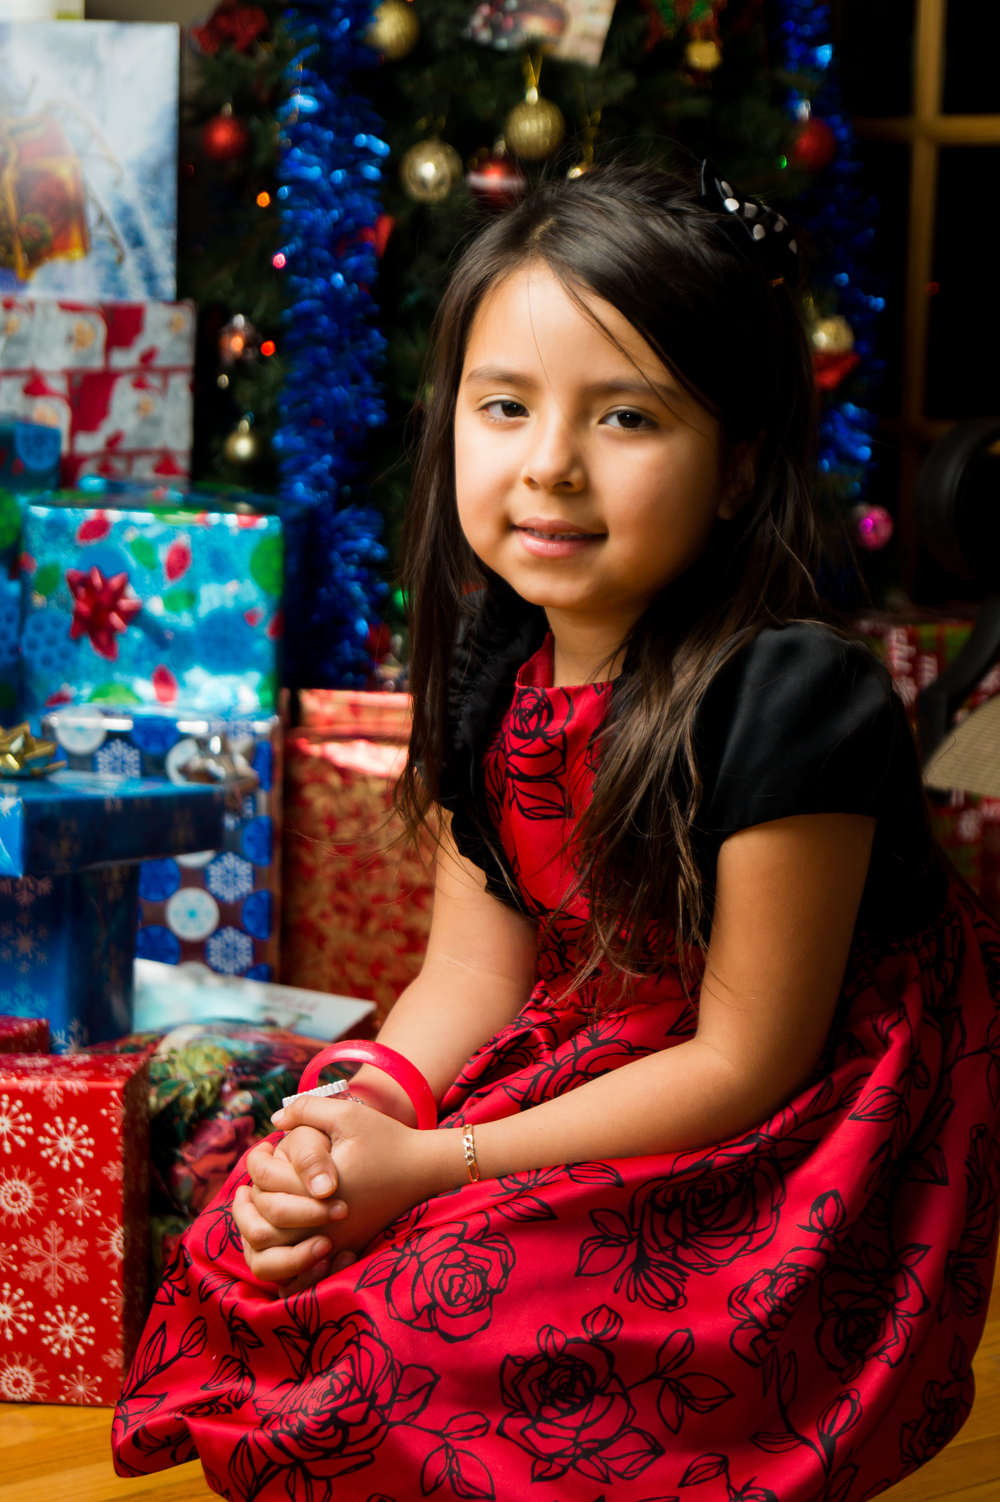 Chrismas portrait (Stephany)